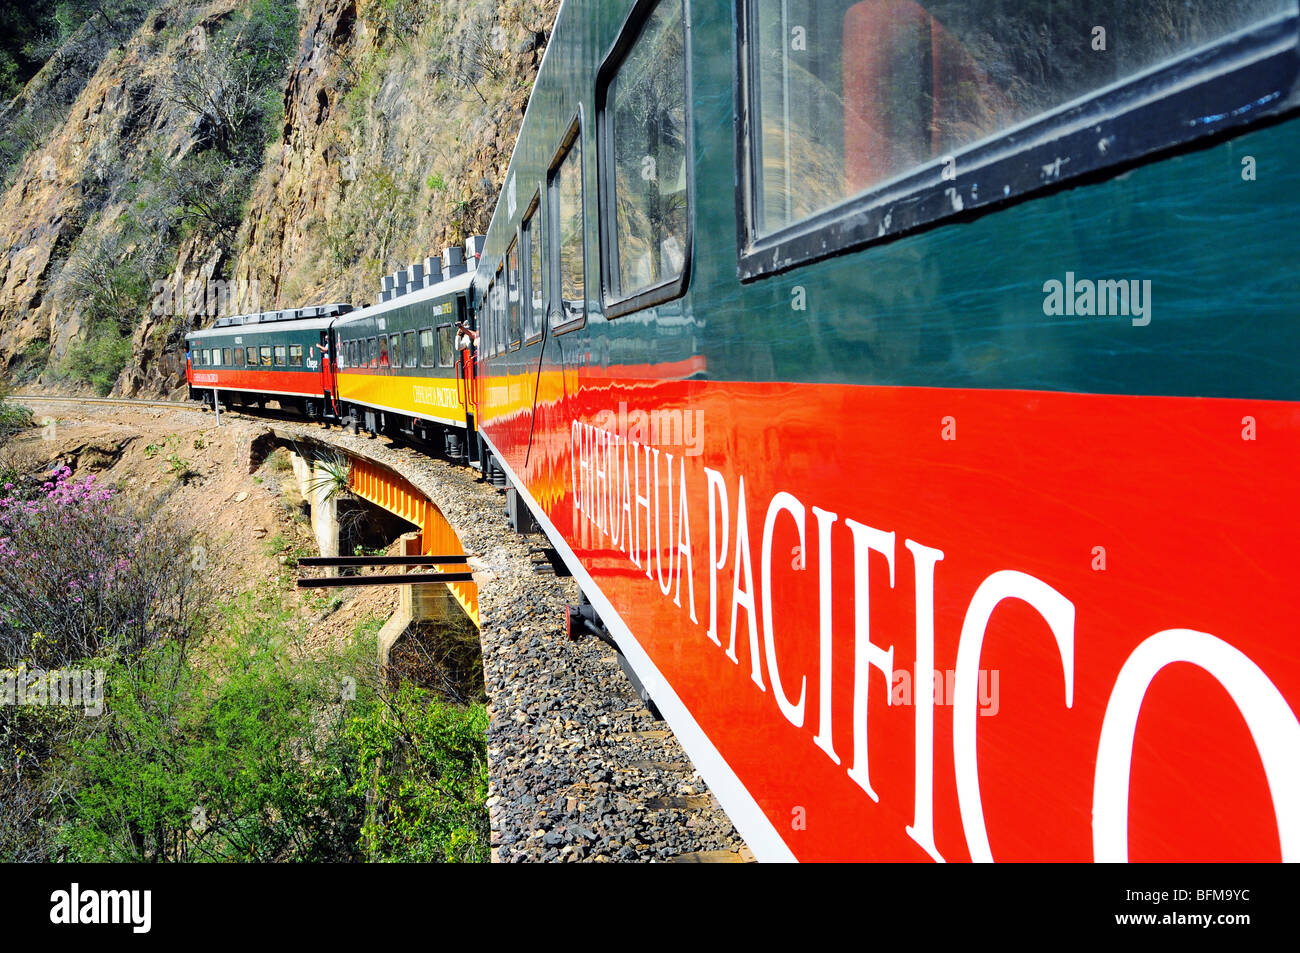 Chepe: Colorful Train Chihuahua to Pacific, North Mexico - Stock Image